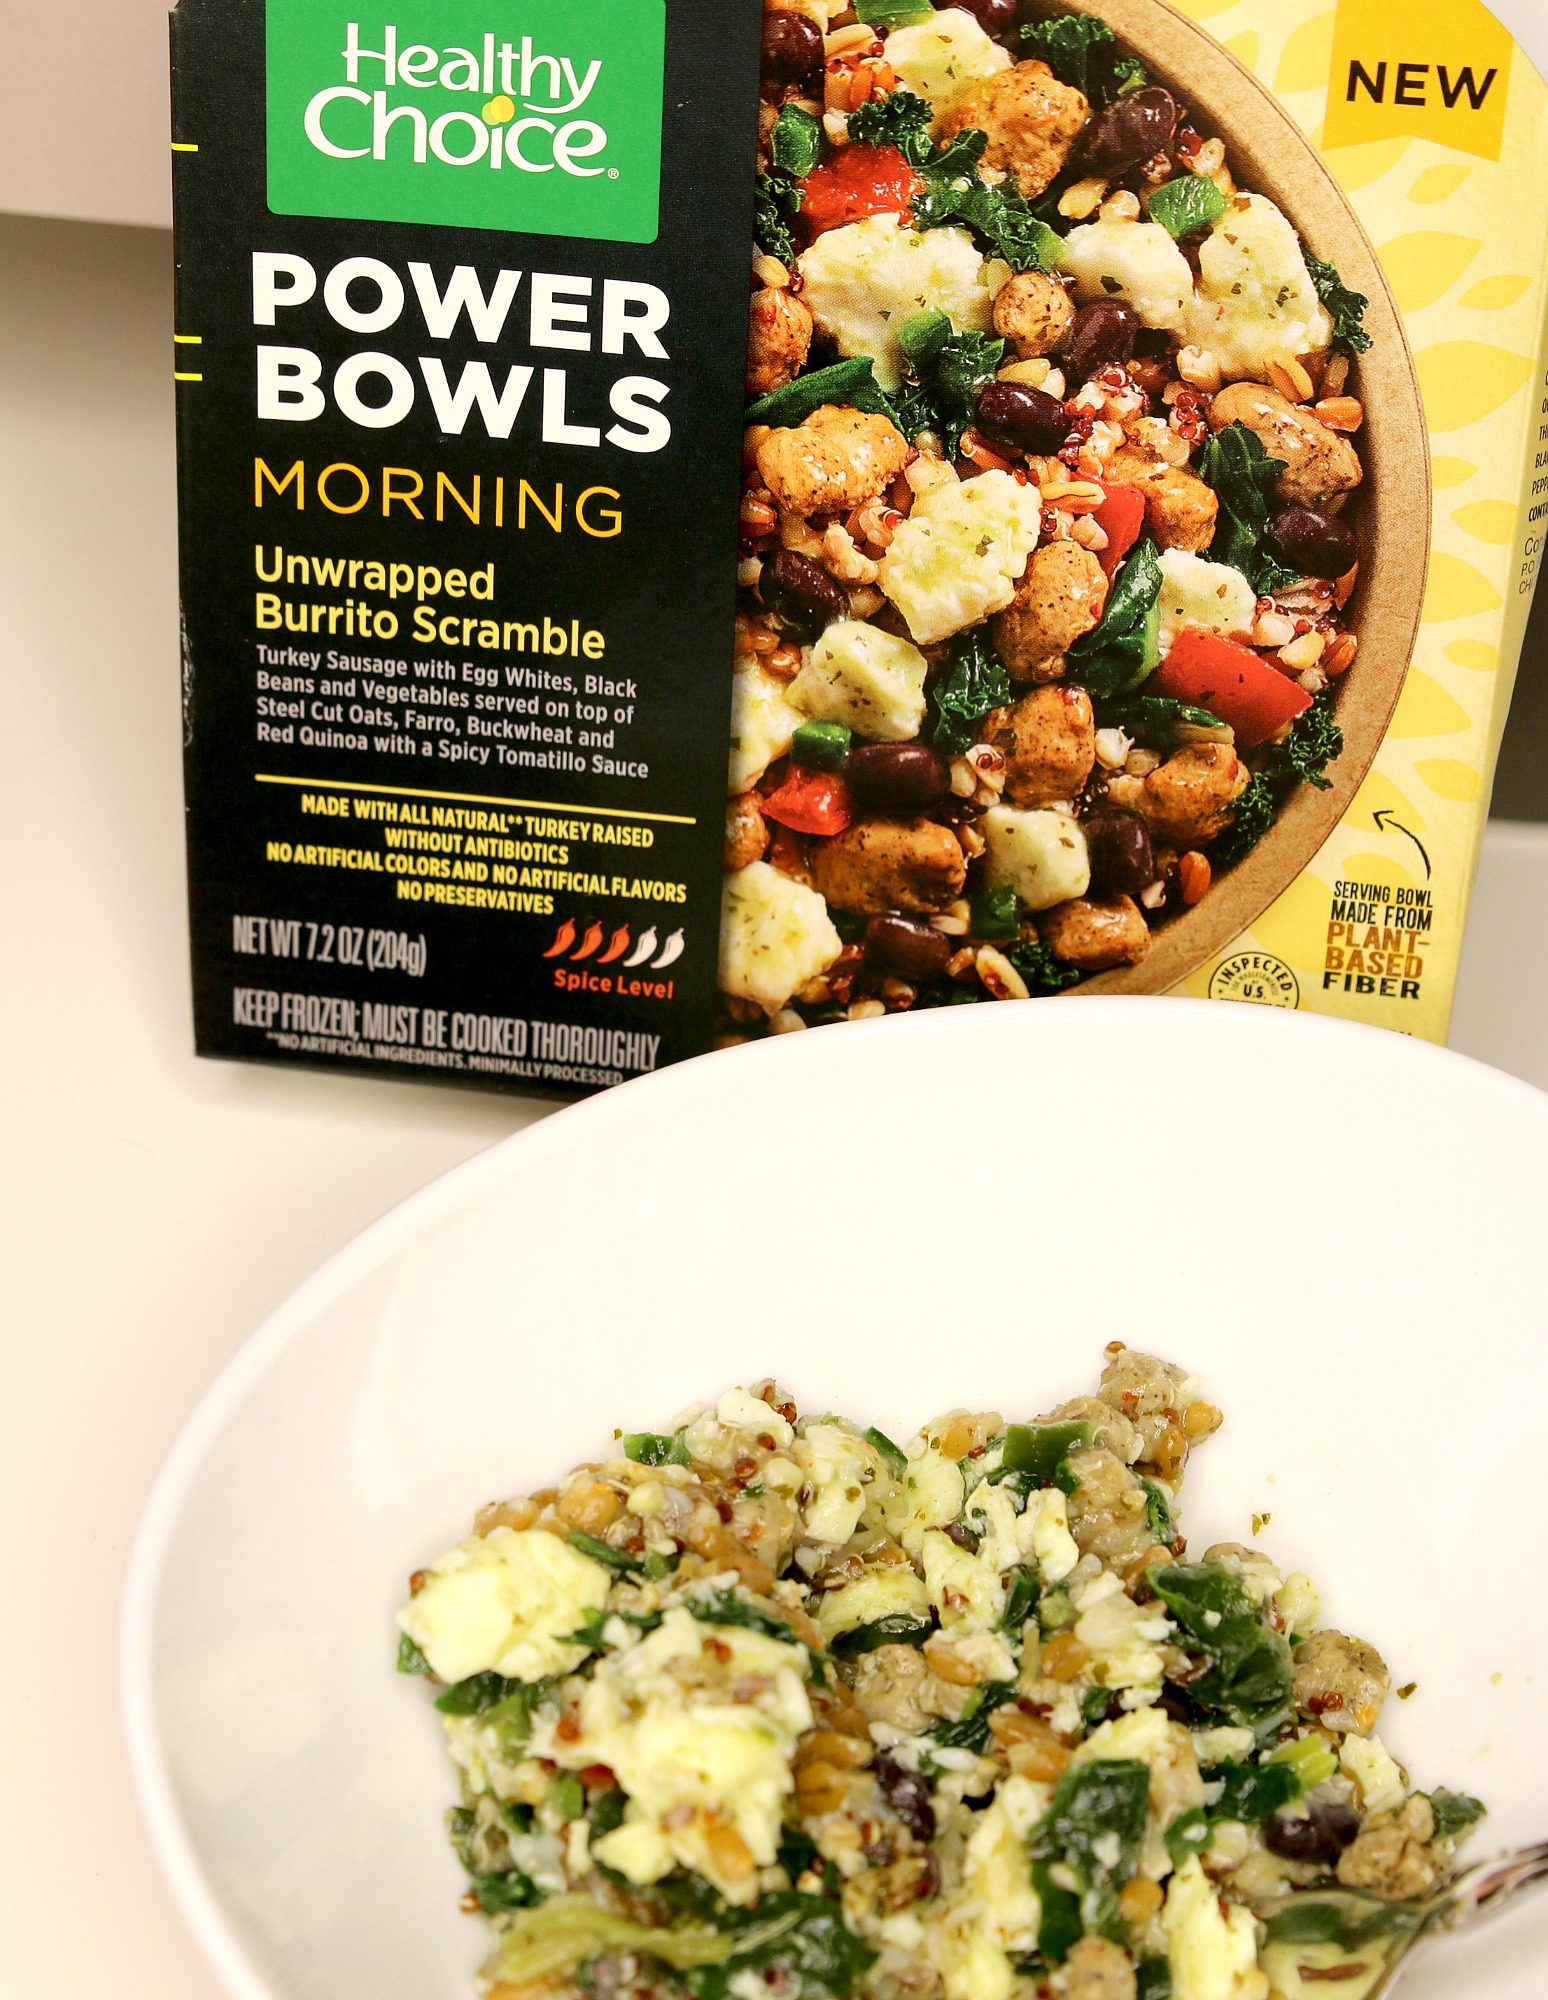 Healthy Choice Morning Power Bowls